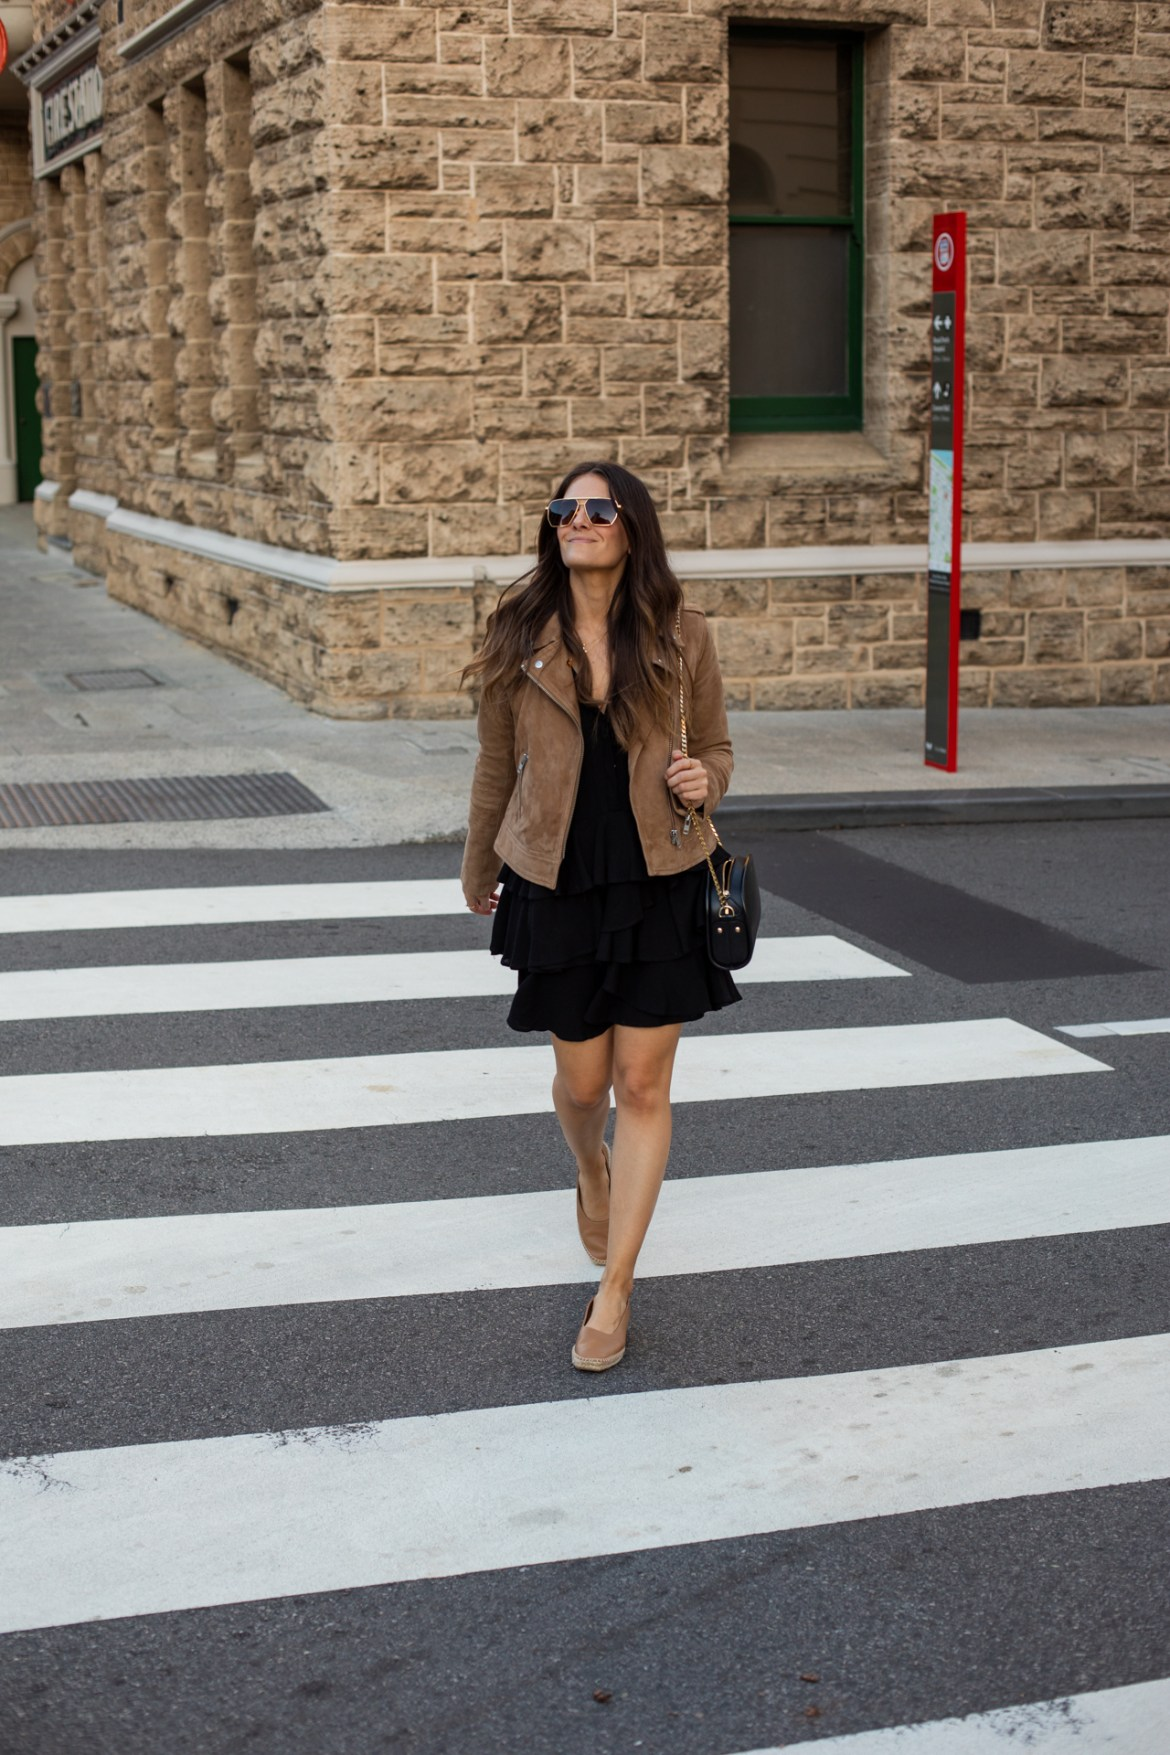 the coolest sunglasses from Bottega Veneta worn by Inspiring Wit fashion and style blogger Jenelle